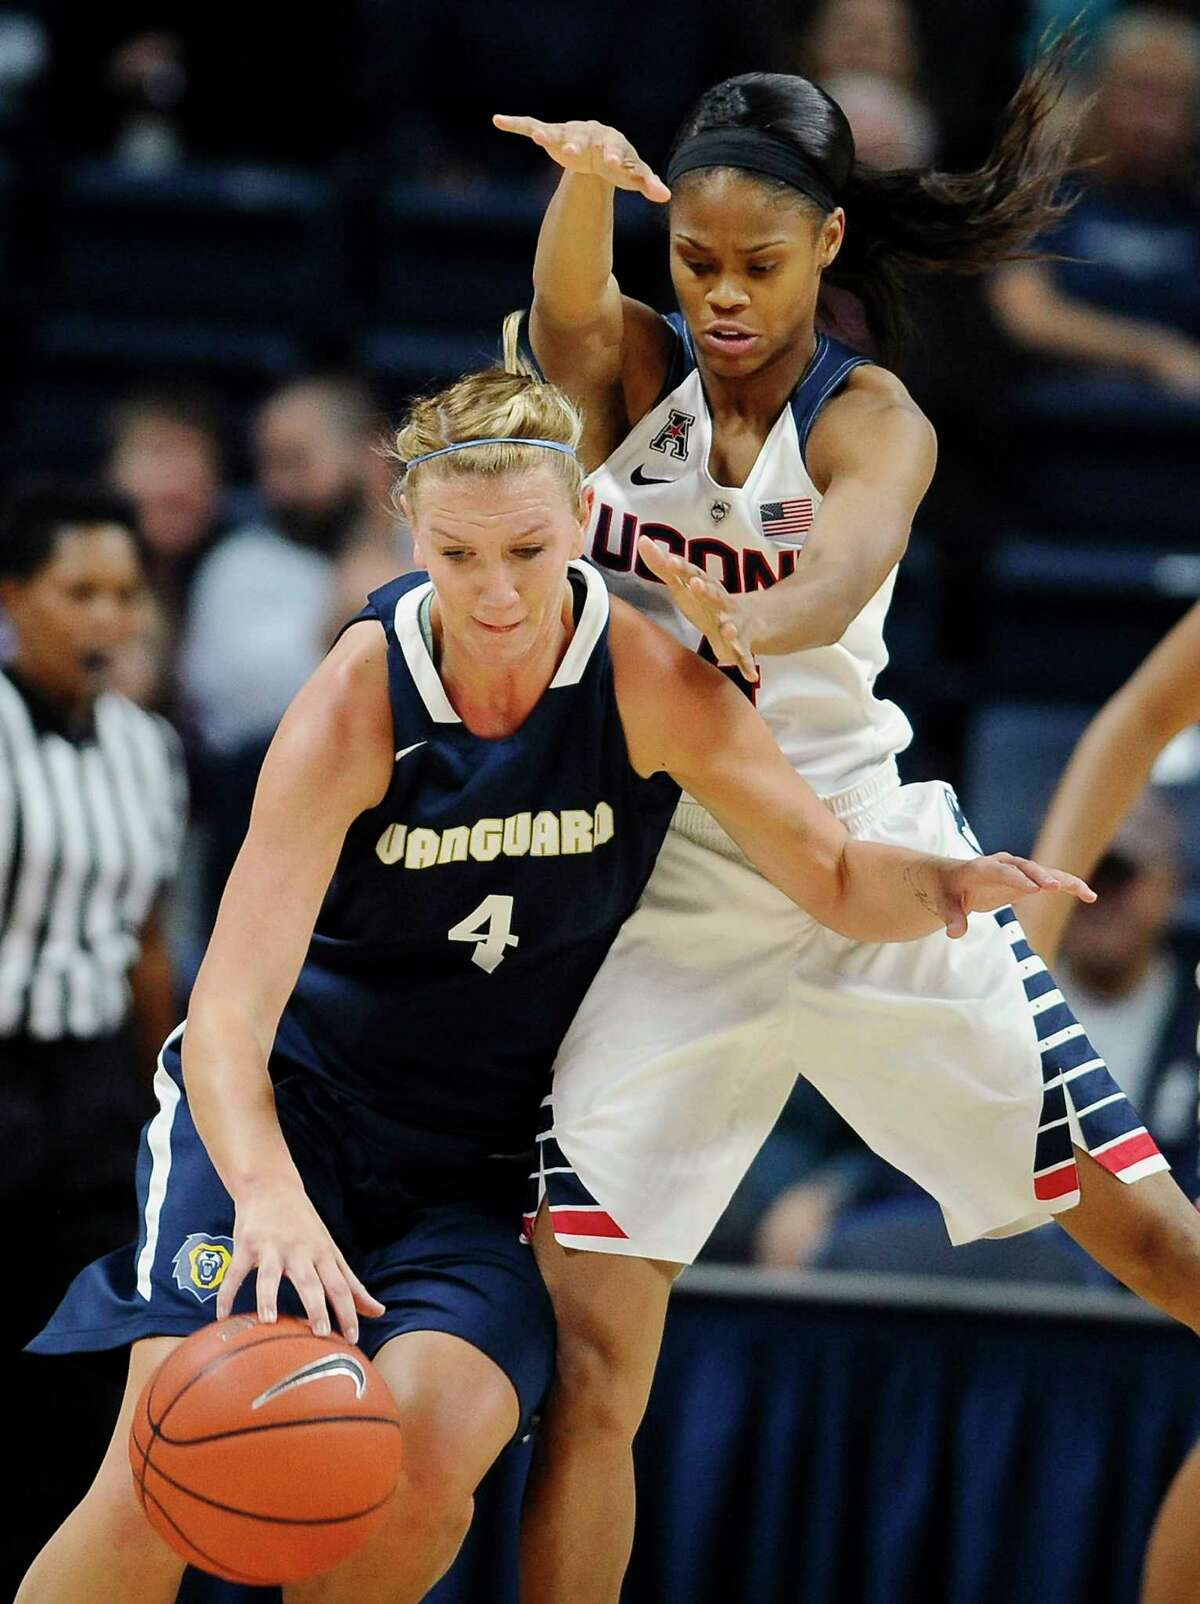 UConn's Moriah Jefferson, right, guards Vanguard's Melissa Norman during the first half Sunday.